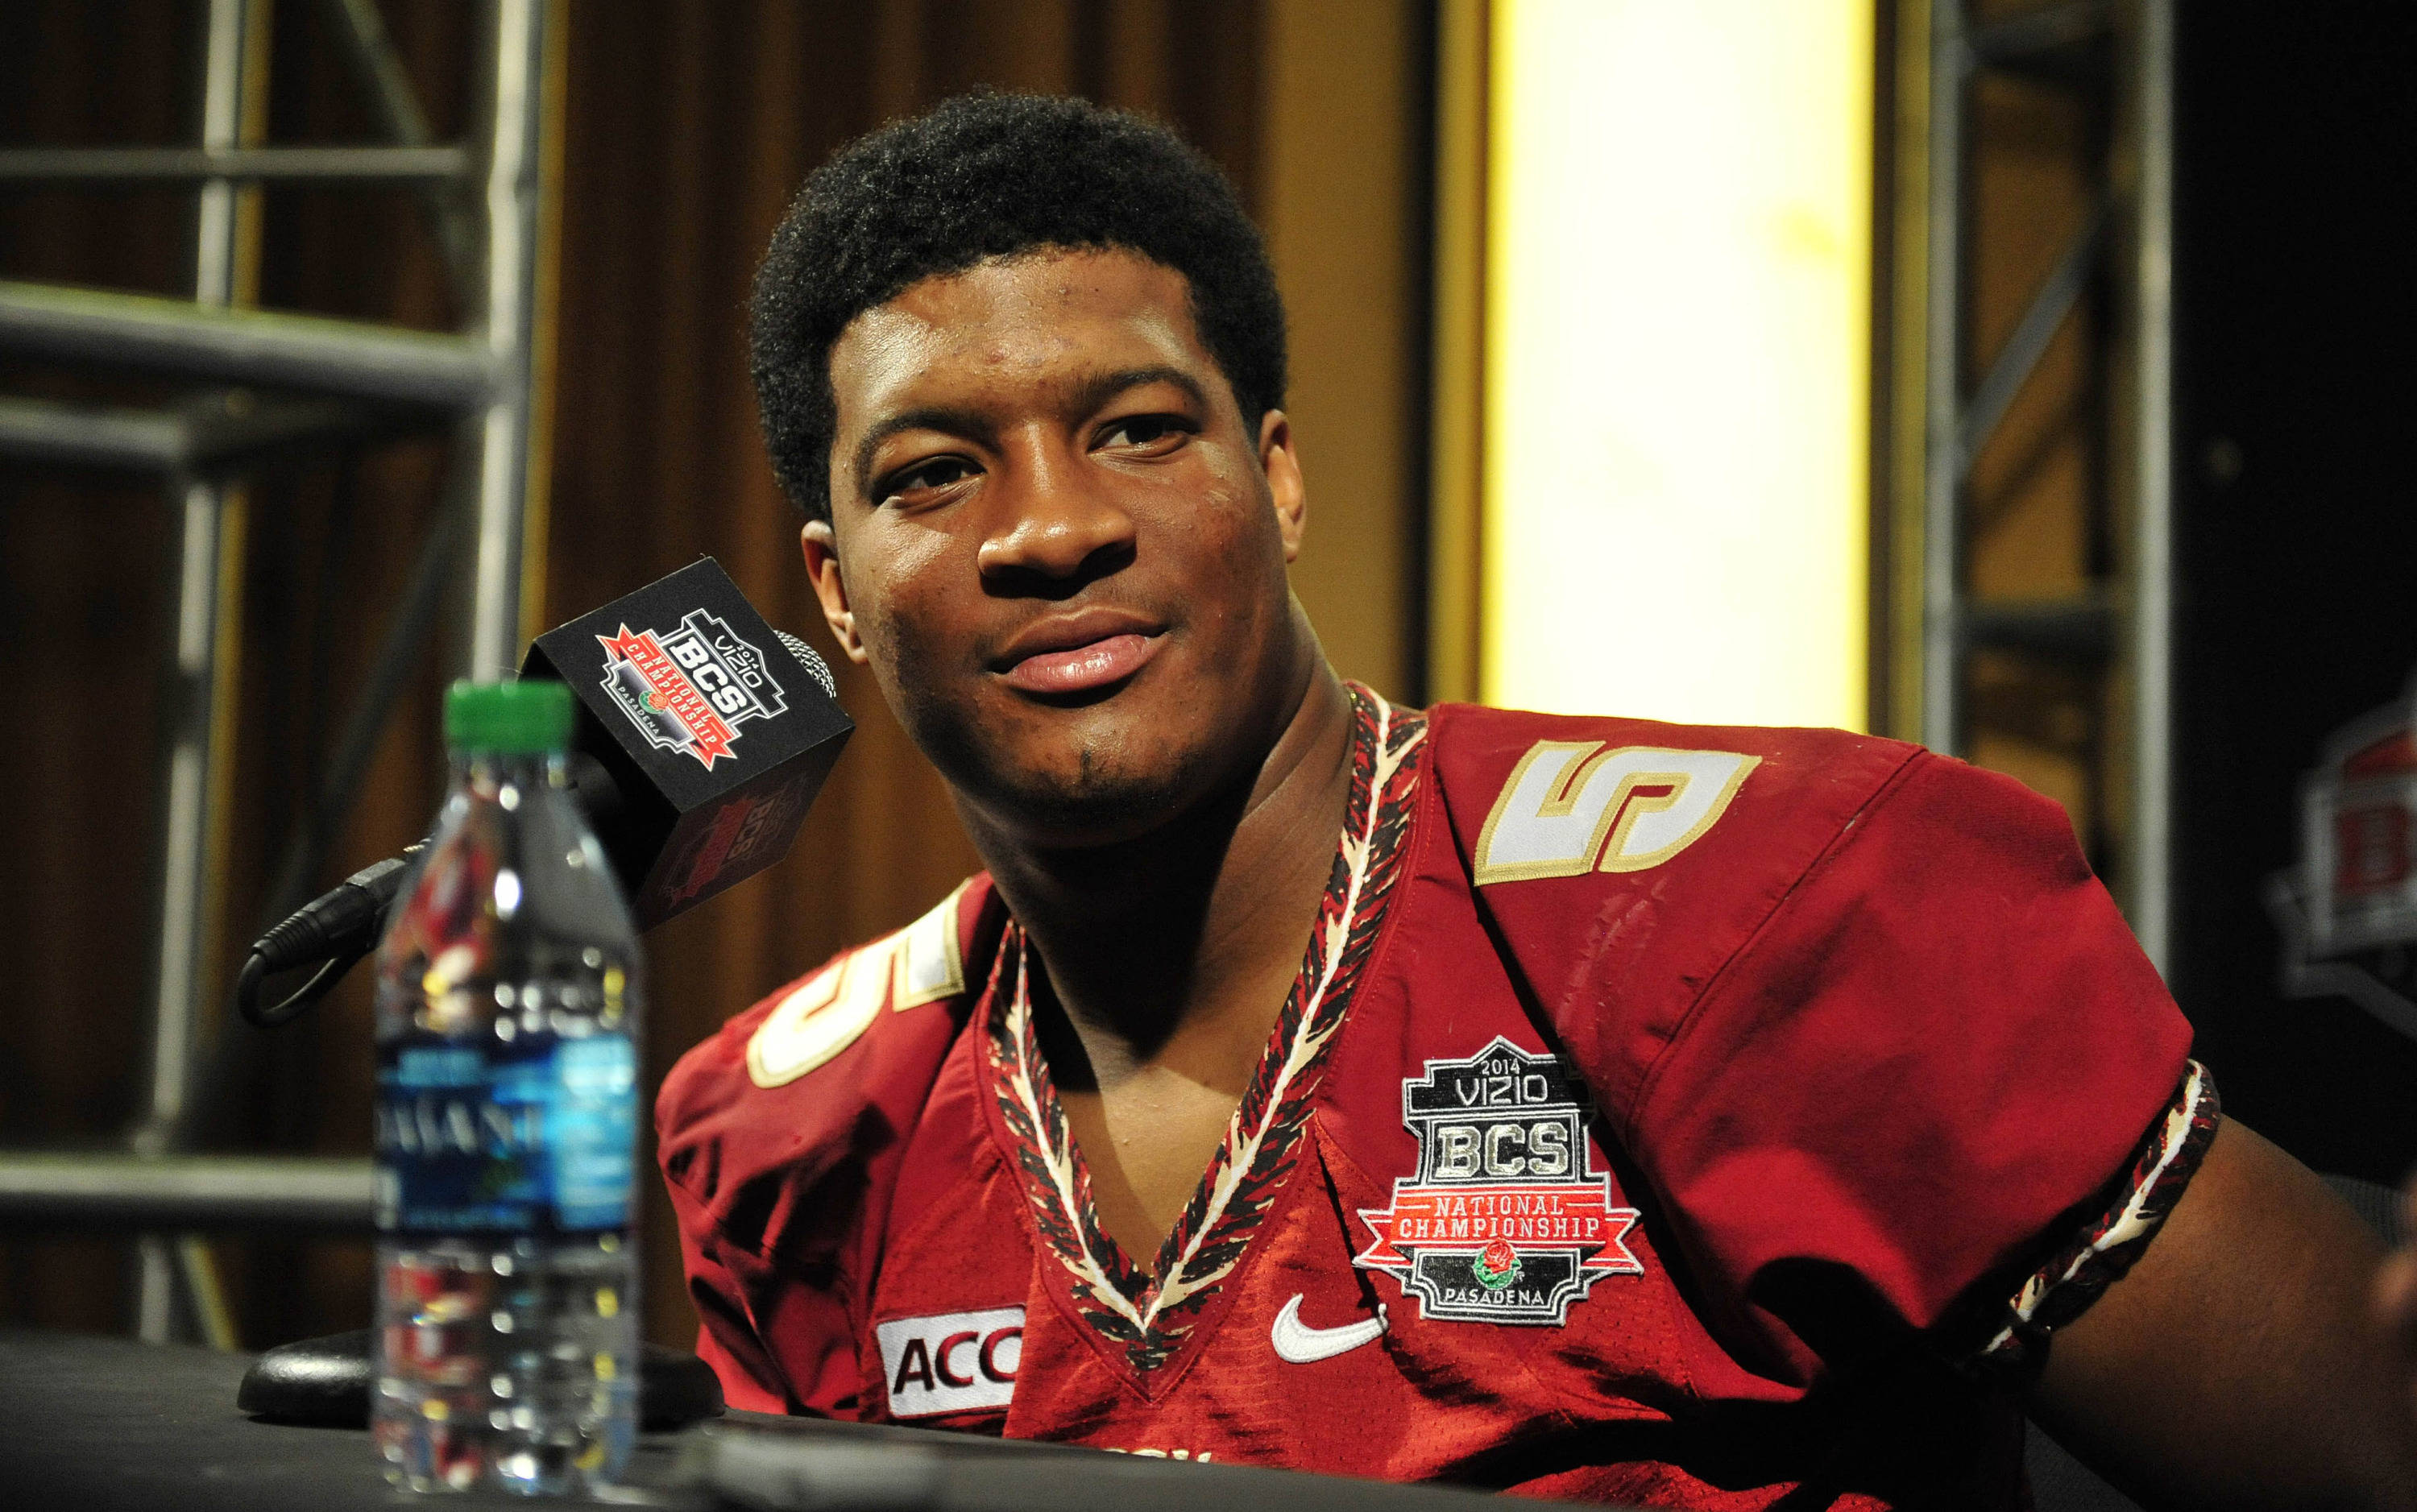 January 4, 2014; Newport Beach, CA, USA; Seminoles quarterback Jameis Winston speaks to media during media day at Newport Beach Marriott. Gary A. Vasquez-USA TODAY Sports